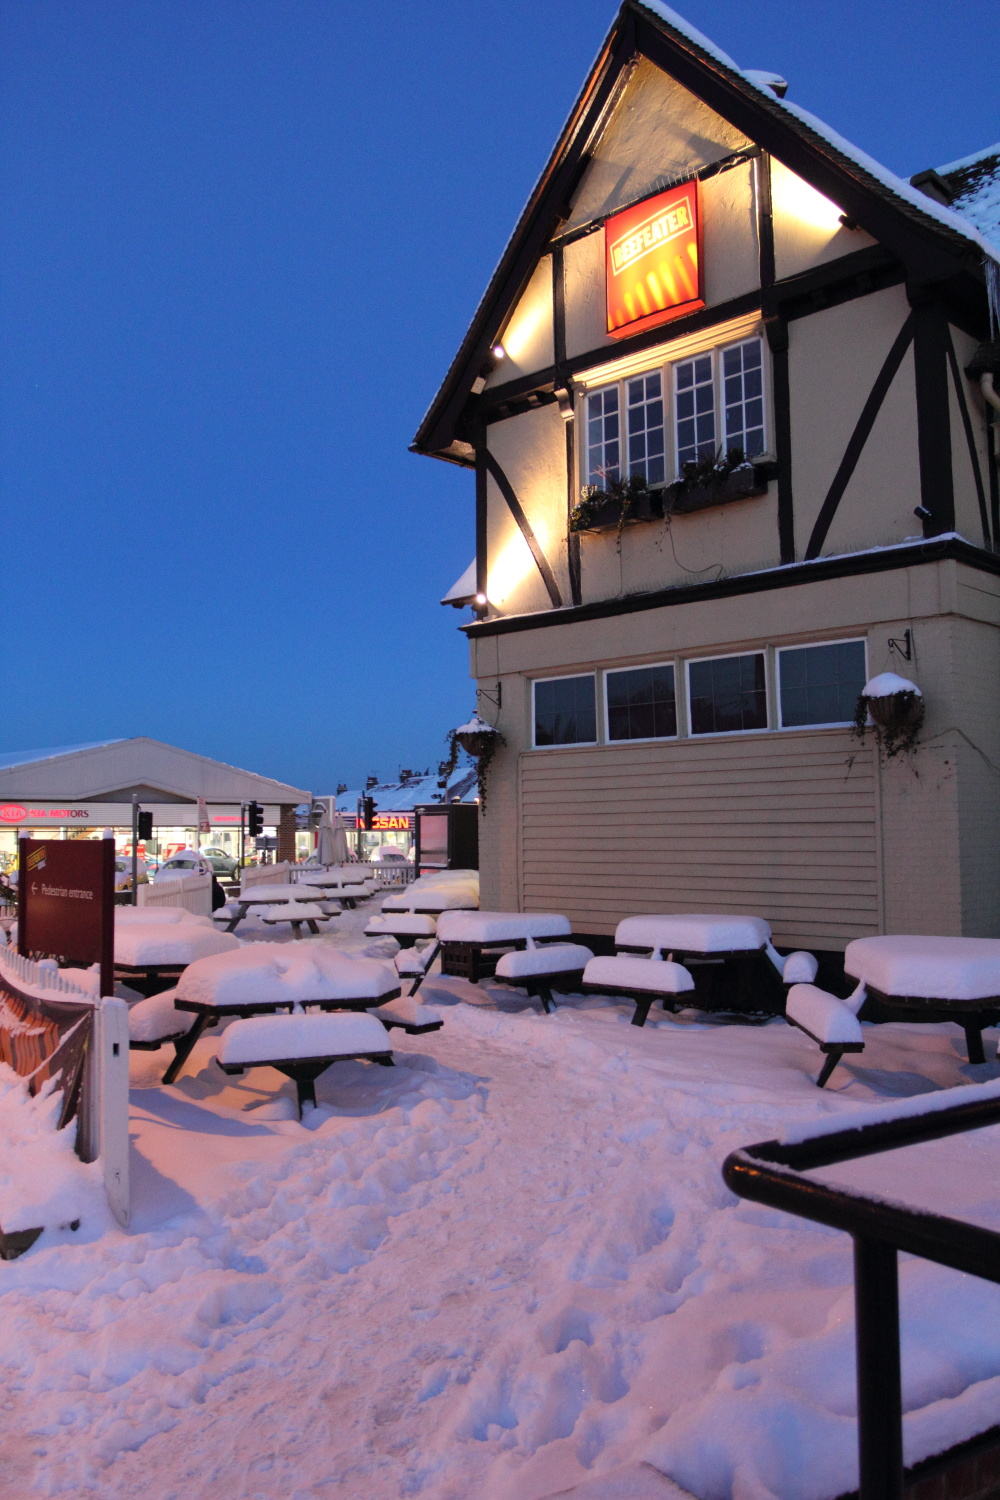 Manor Farm Beefeater Pub Restaurant in snow 2010